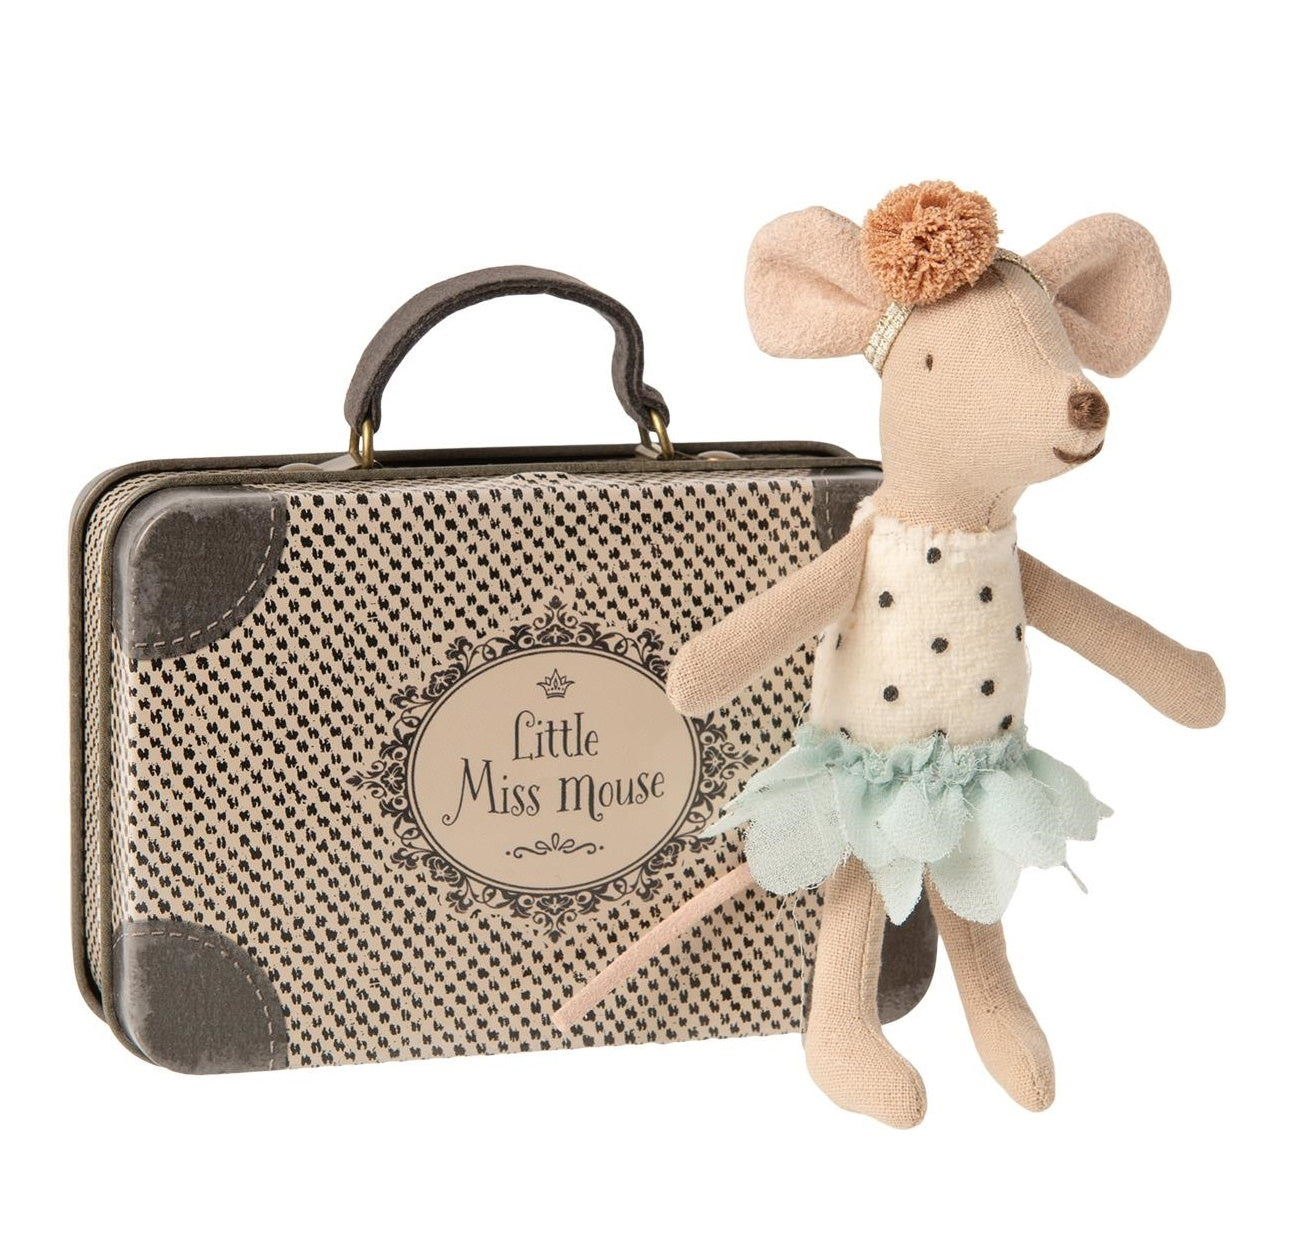 Maileg Little Miss Mouse in Suitcase at Little Sprout